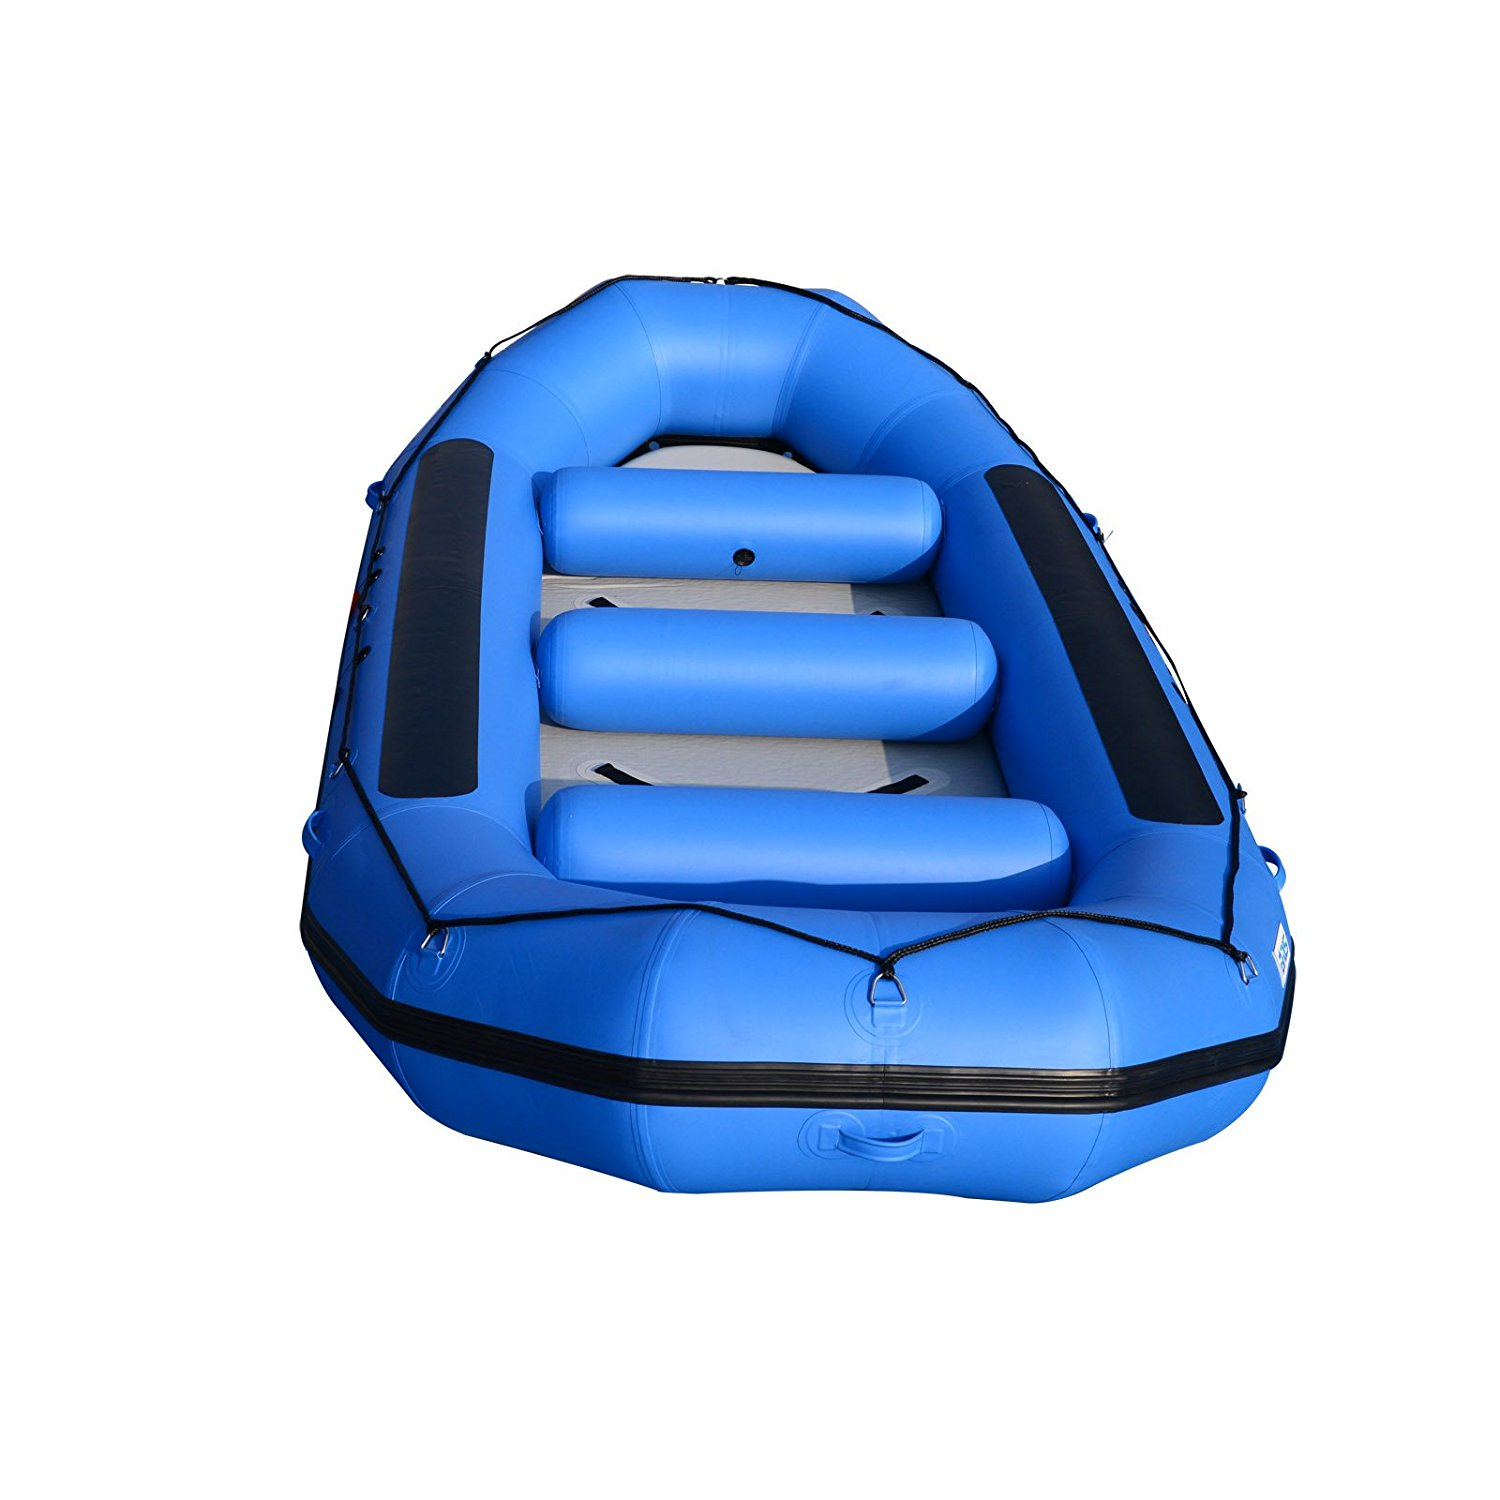 BRIS 15Ft Inflatable White Water River Raft Inflatable Boat Floating Tubes Pontoon by BRIS